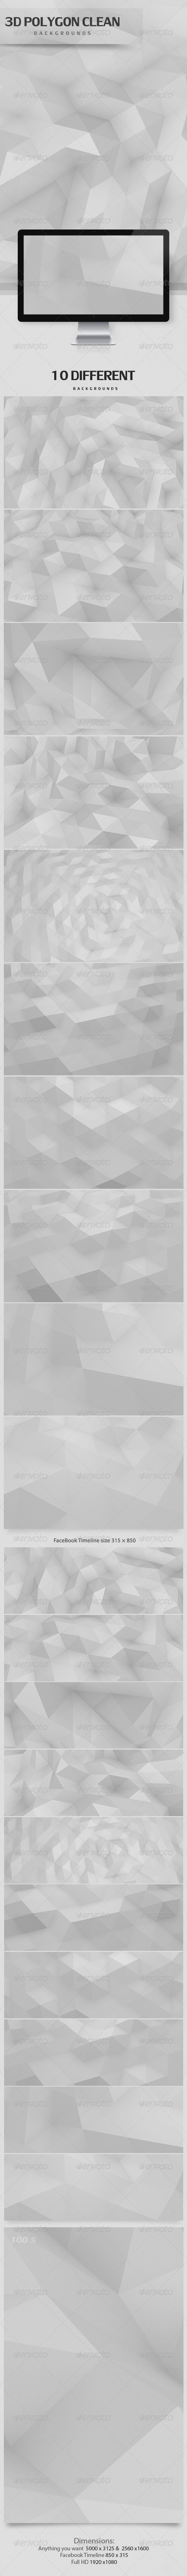 GraphicRiver 3D Polygon Clean Backgrounds 3586209